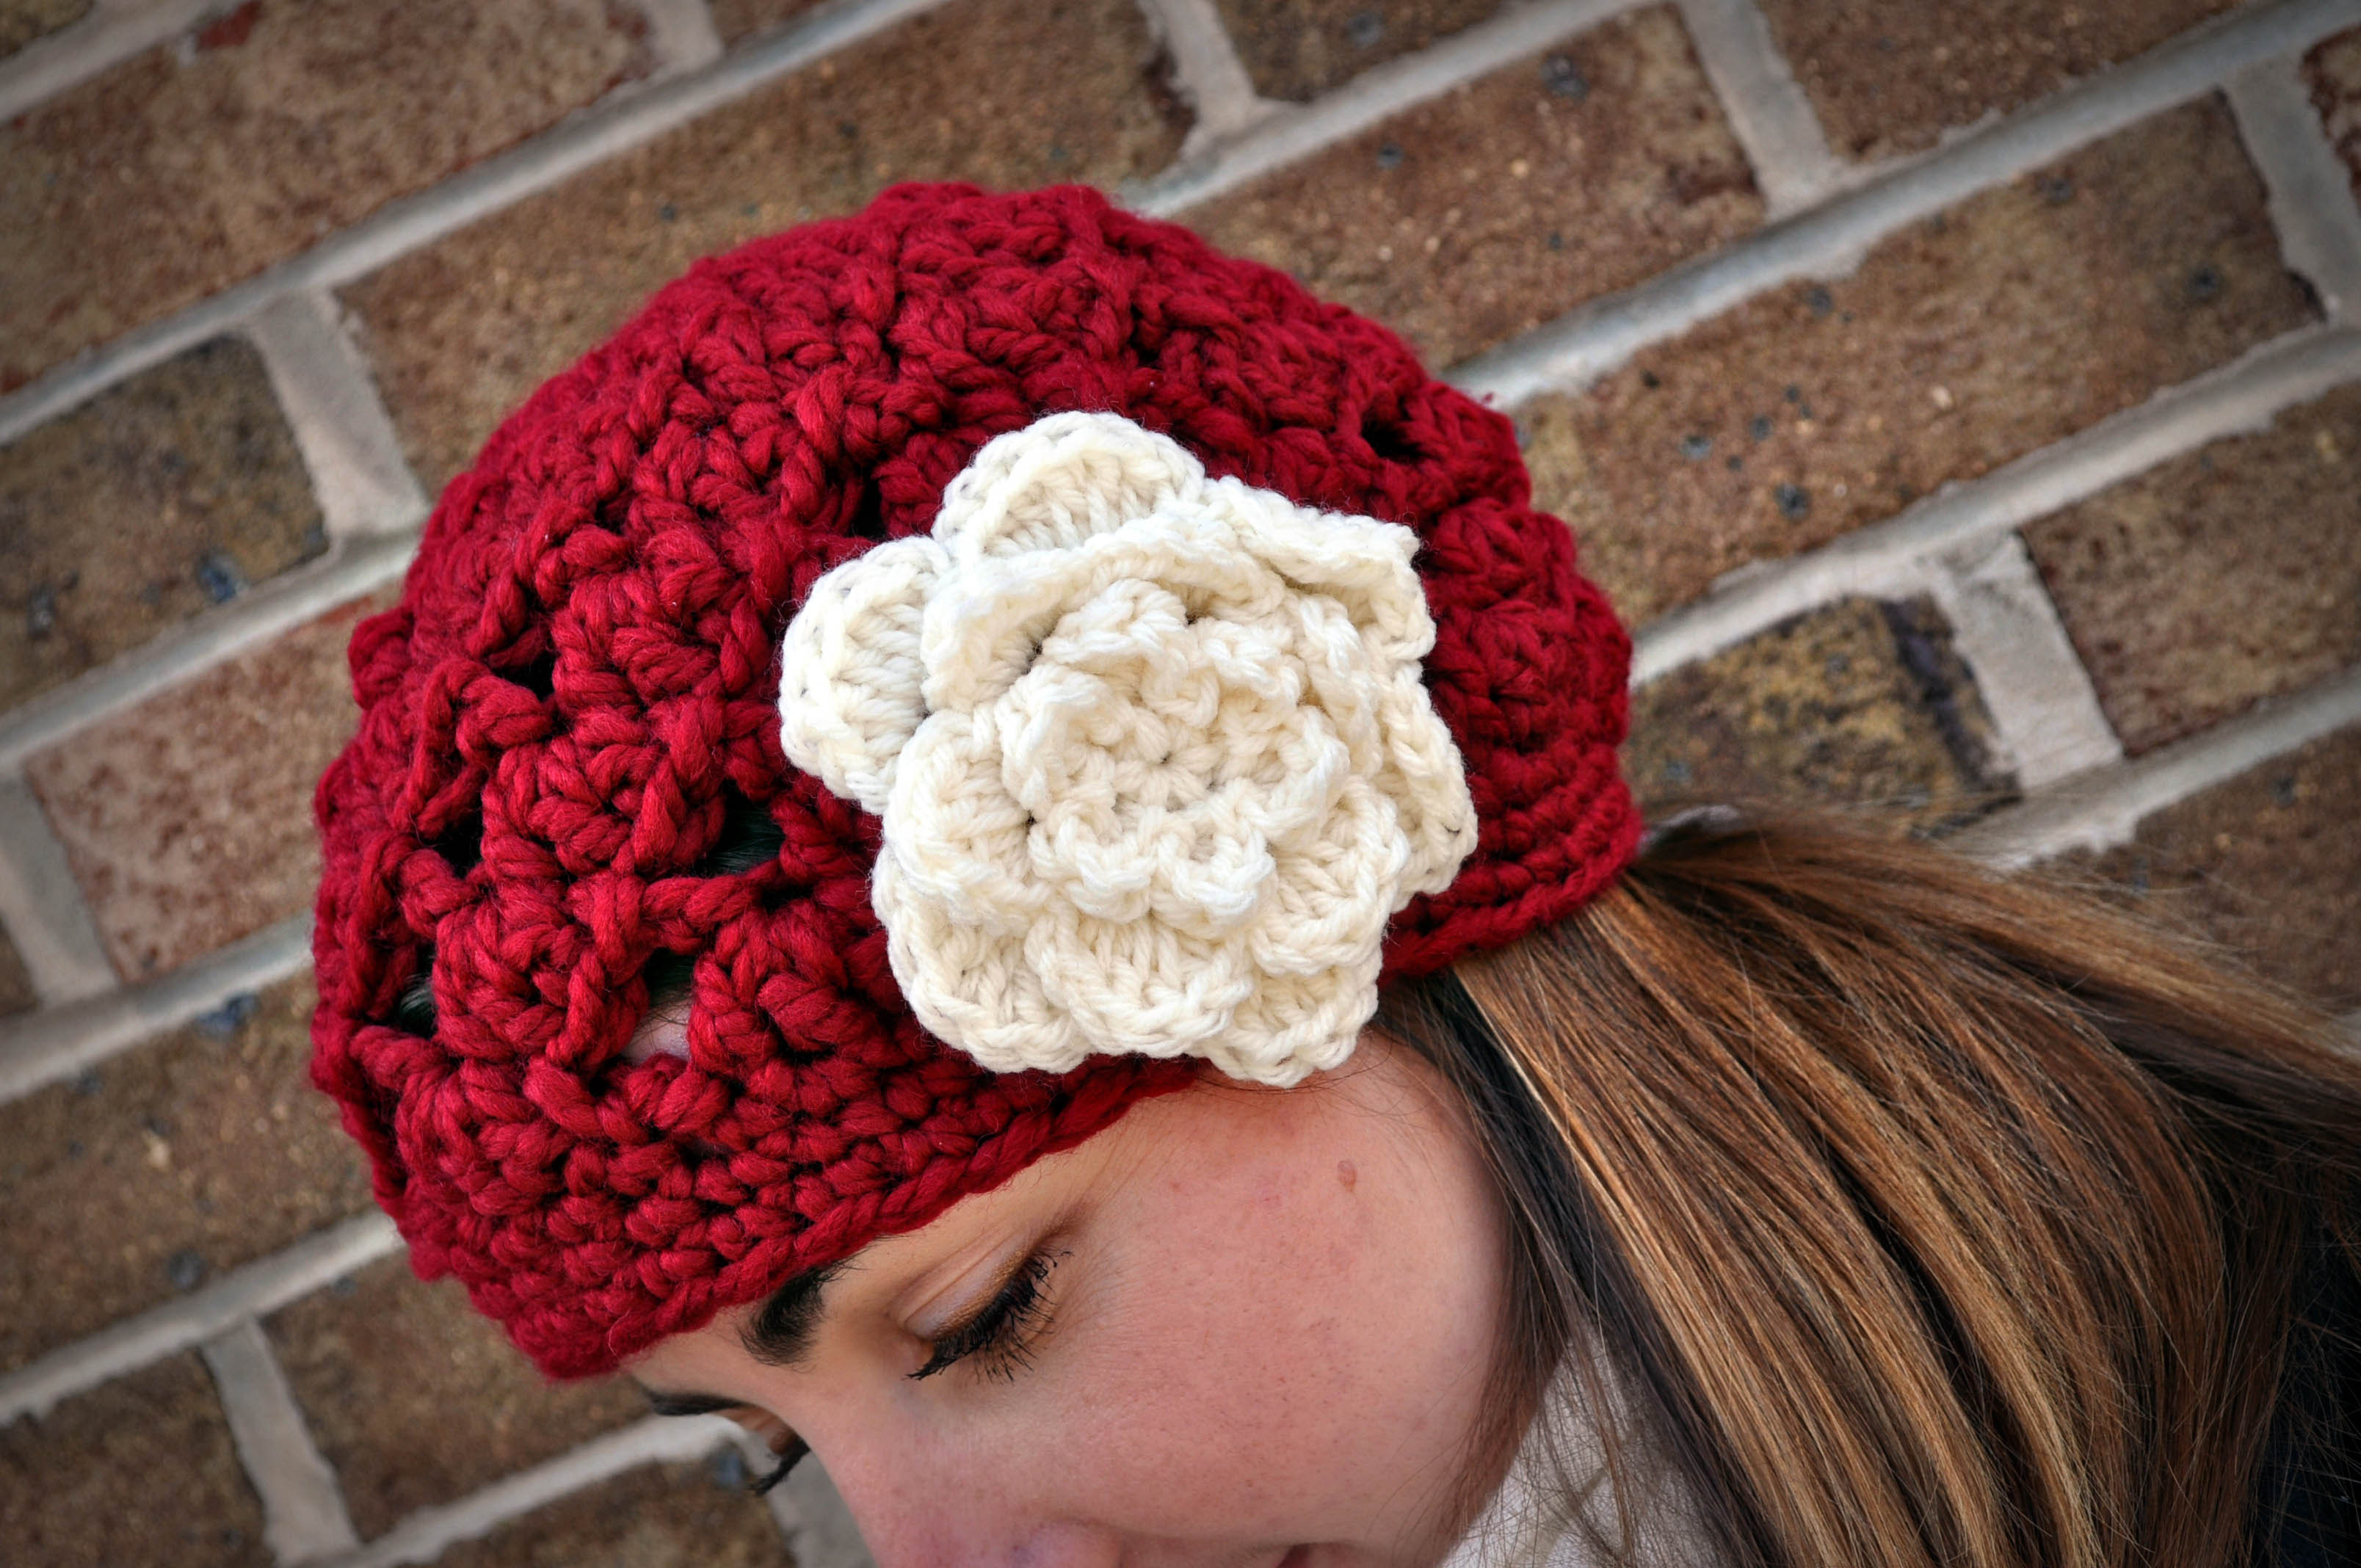 Crochet Stitches For Thick Yarn : Crochet Chunky Swirl Beret Classy Crochet